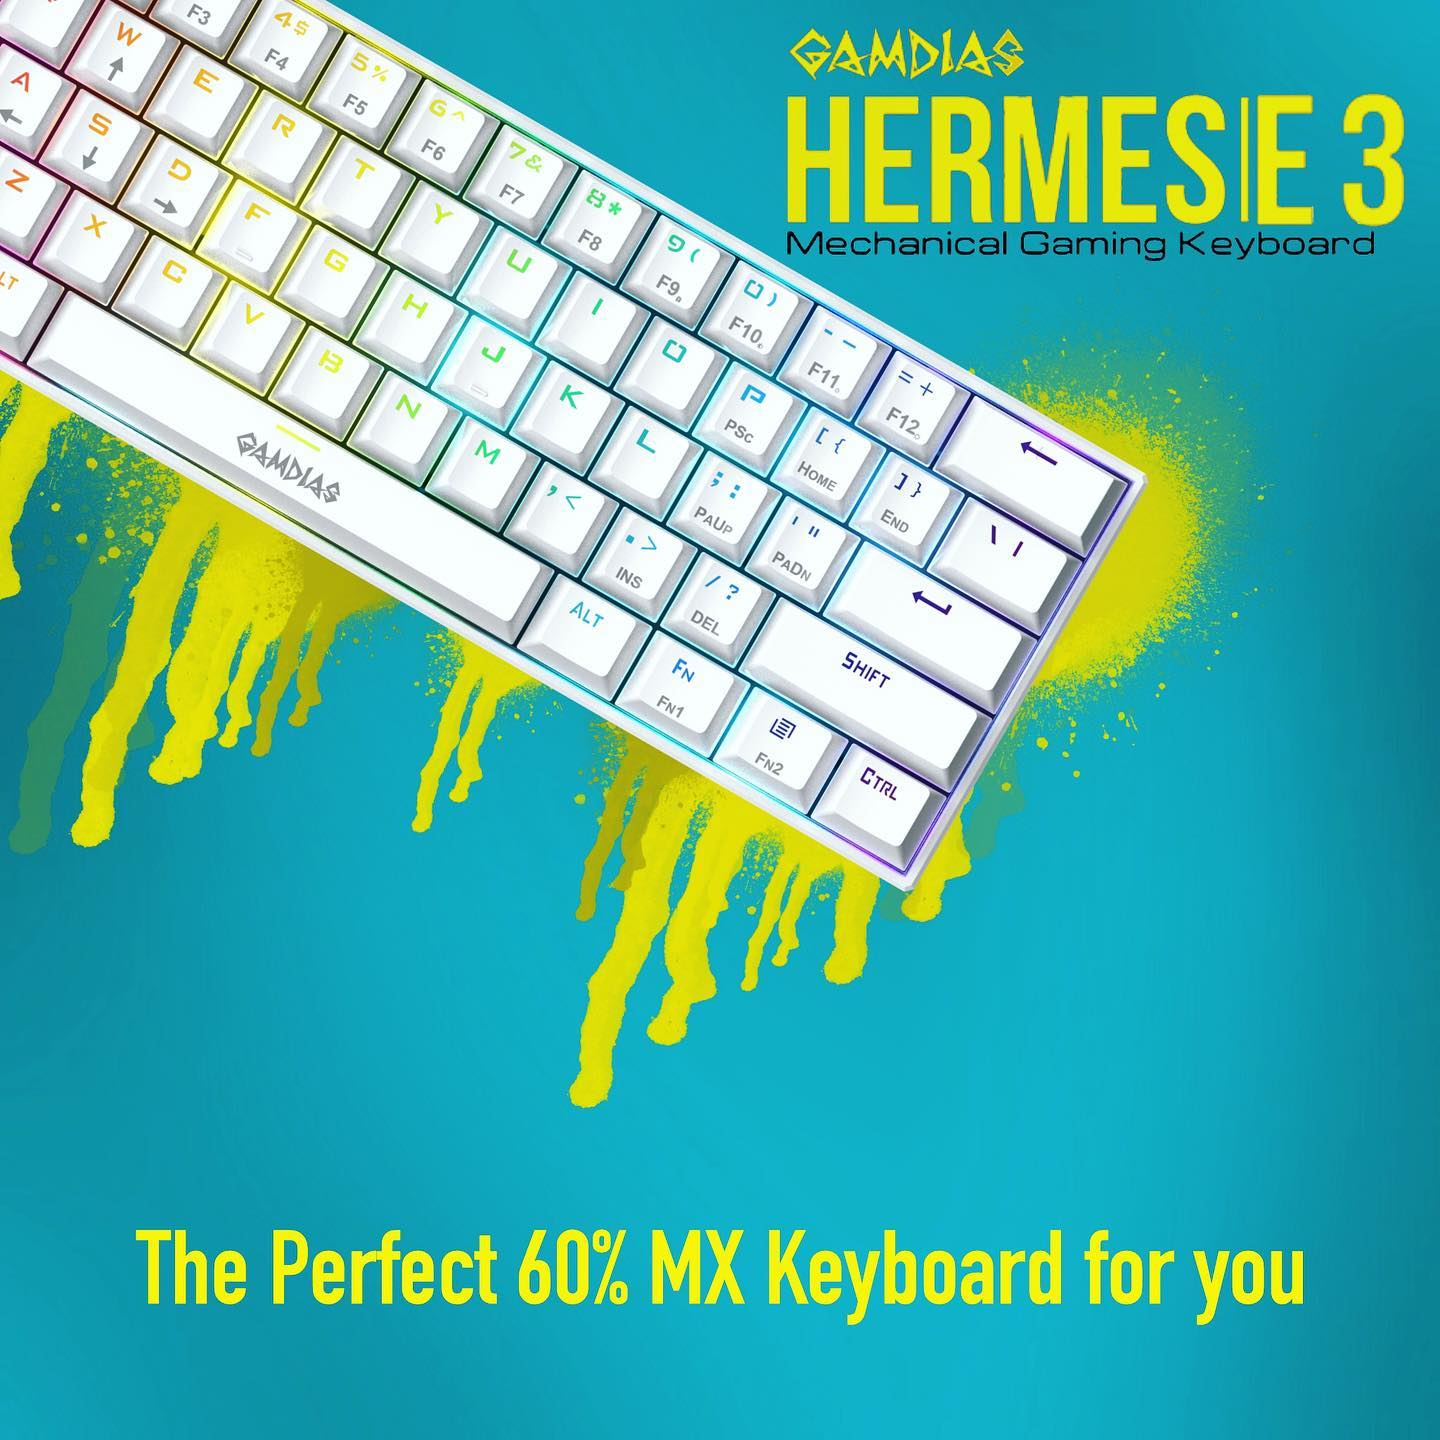 Level Up🌟your gaming peripherals to a cleaner look! The 60% Keyboard that is perfect for you! HERMES|E3 60% Mechanical Gaming Keyboard... ++++++++++++++++++++++++++++++